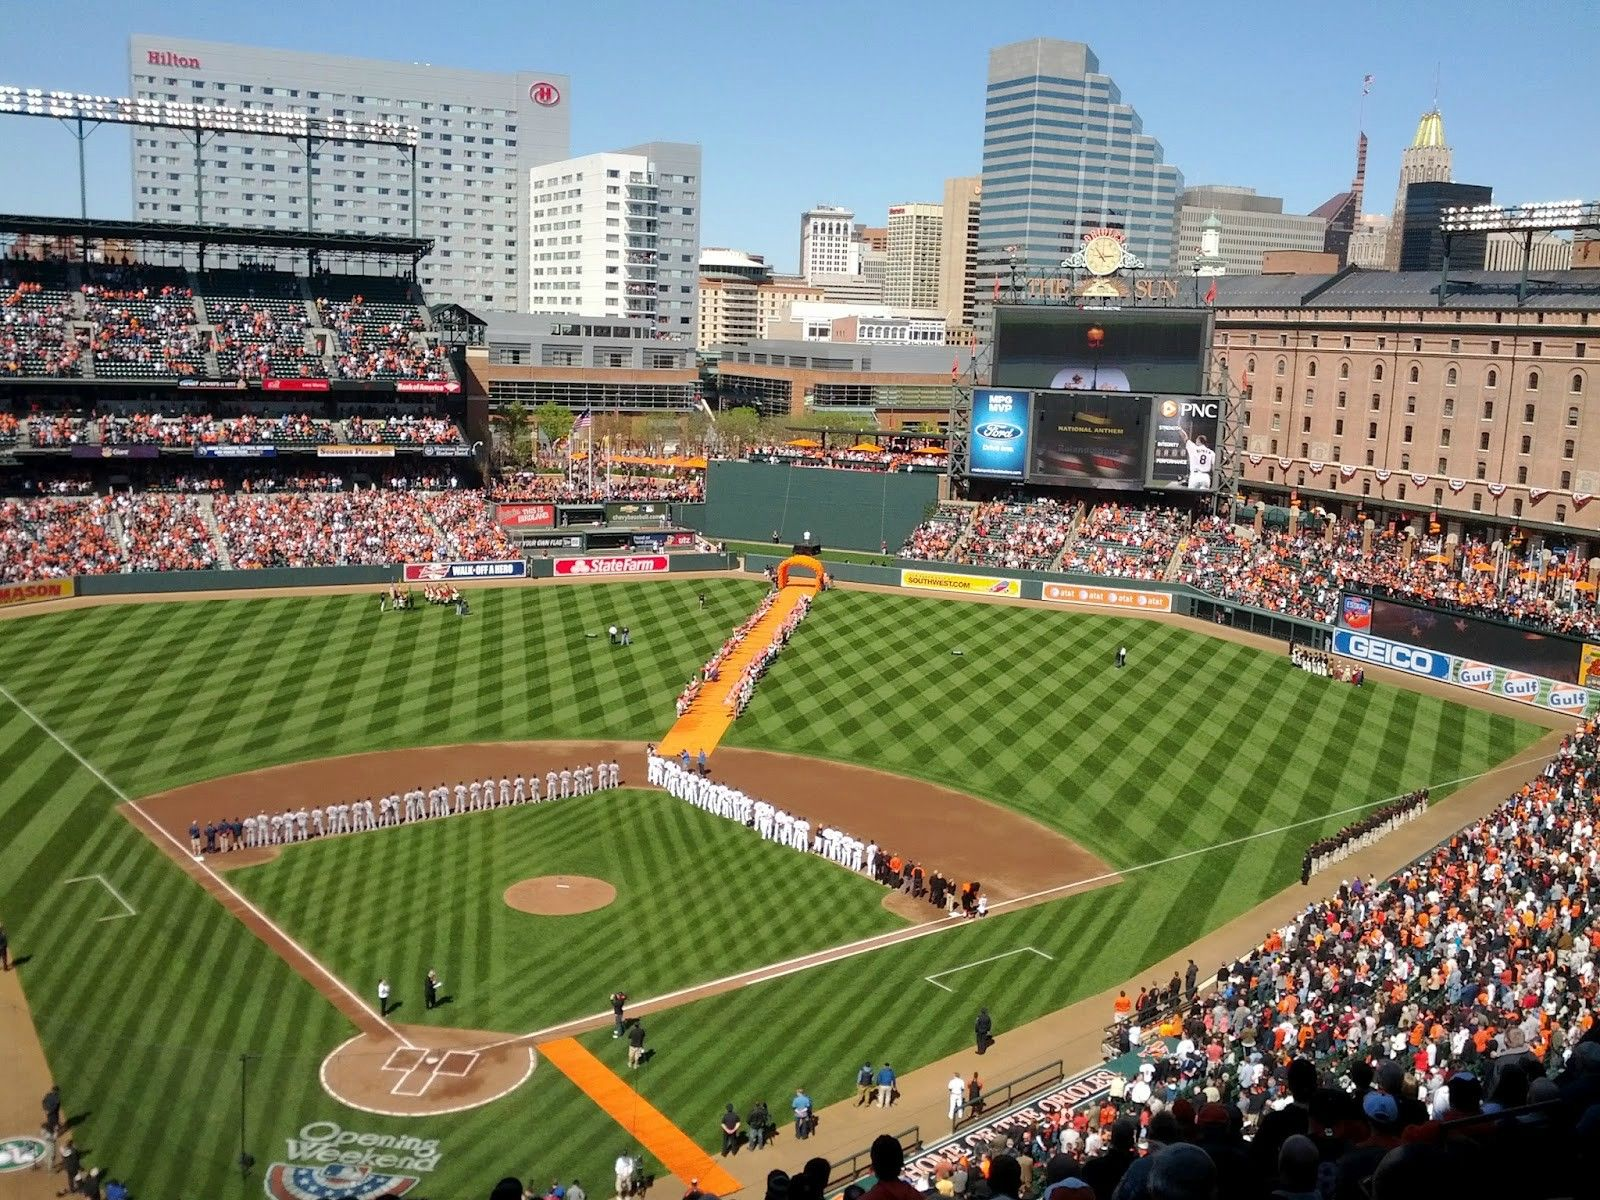 Our Ballpark Oriole Park At Camden Yards Is Stunning Camden Yards Baltimore Orioles Baseball Orioles Baseball